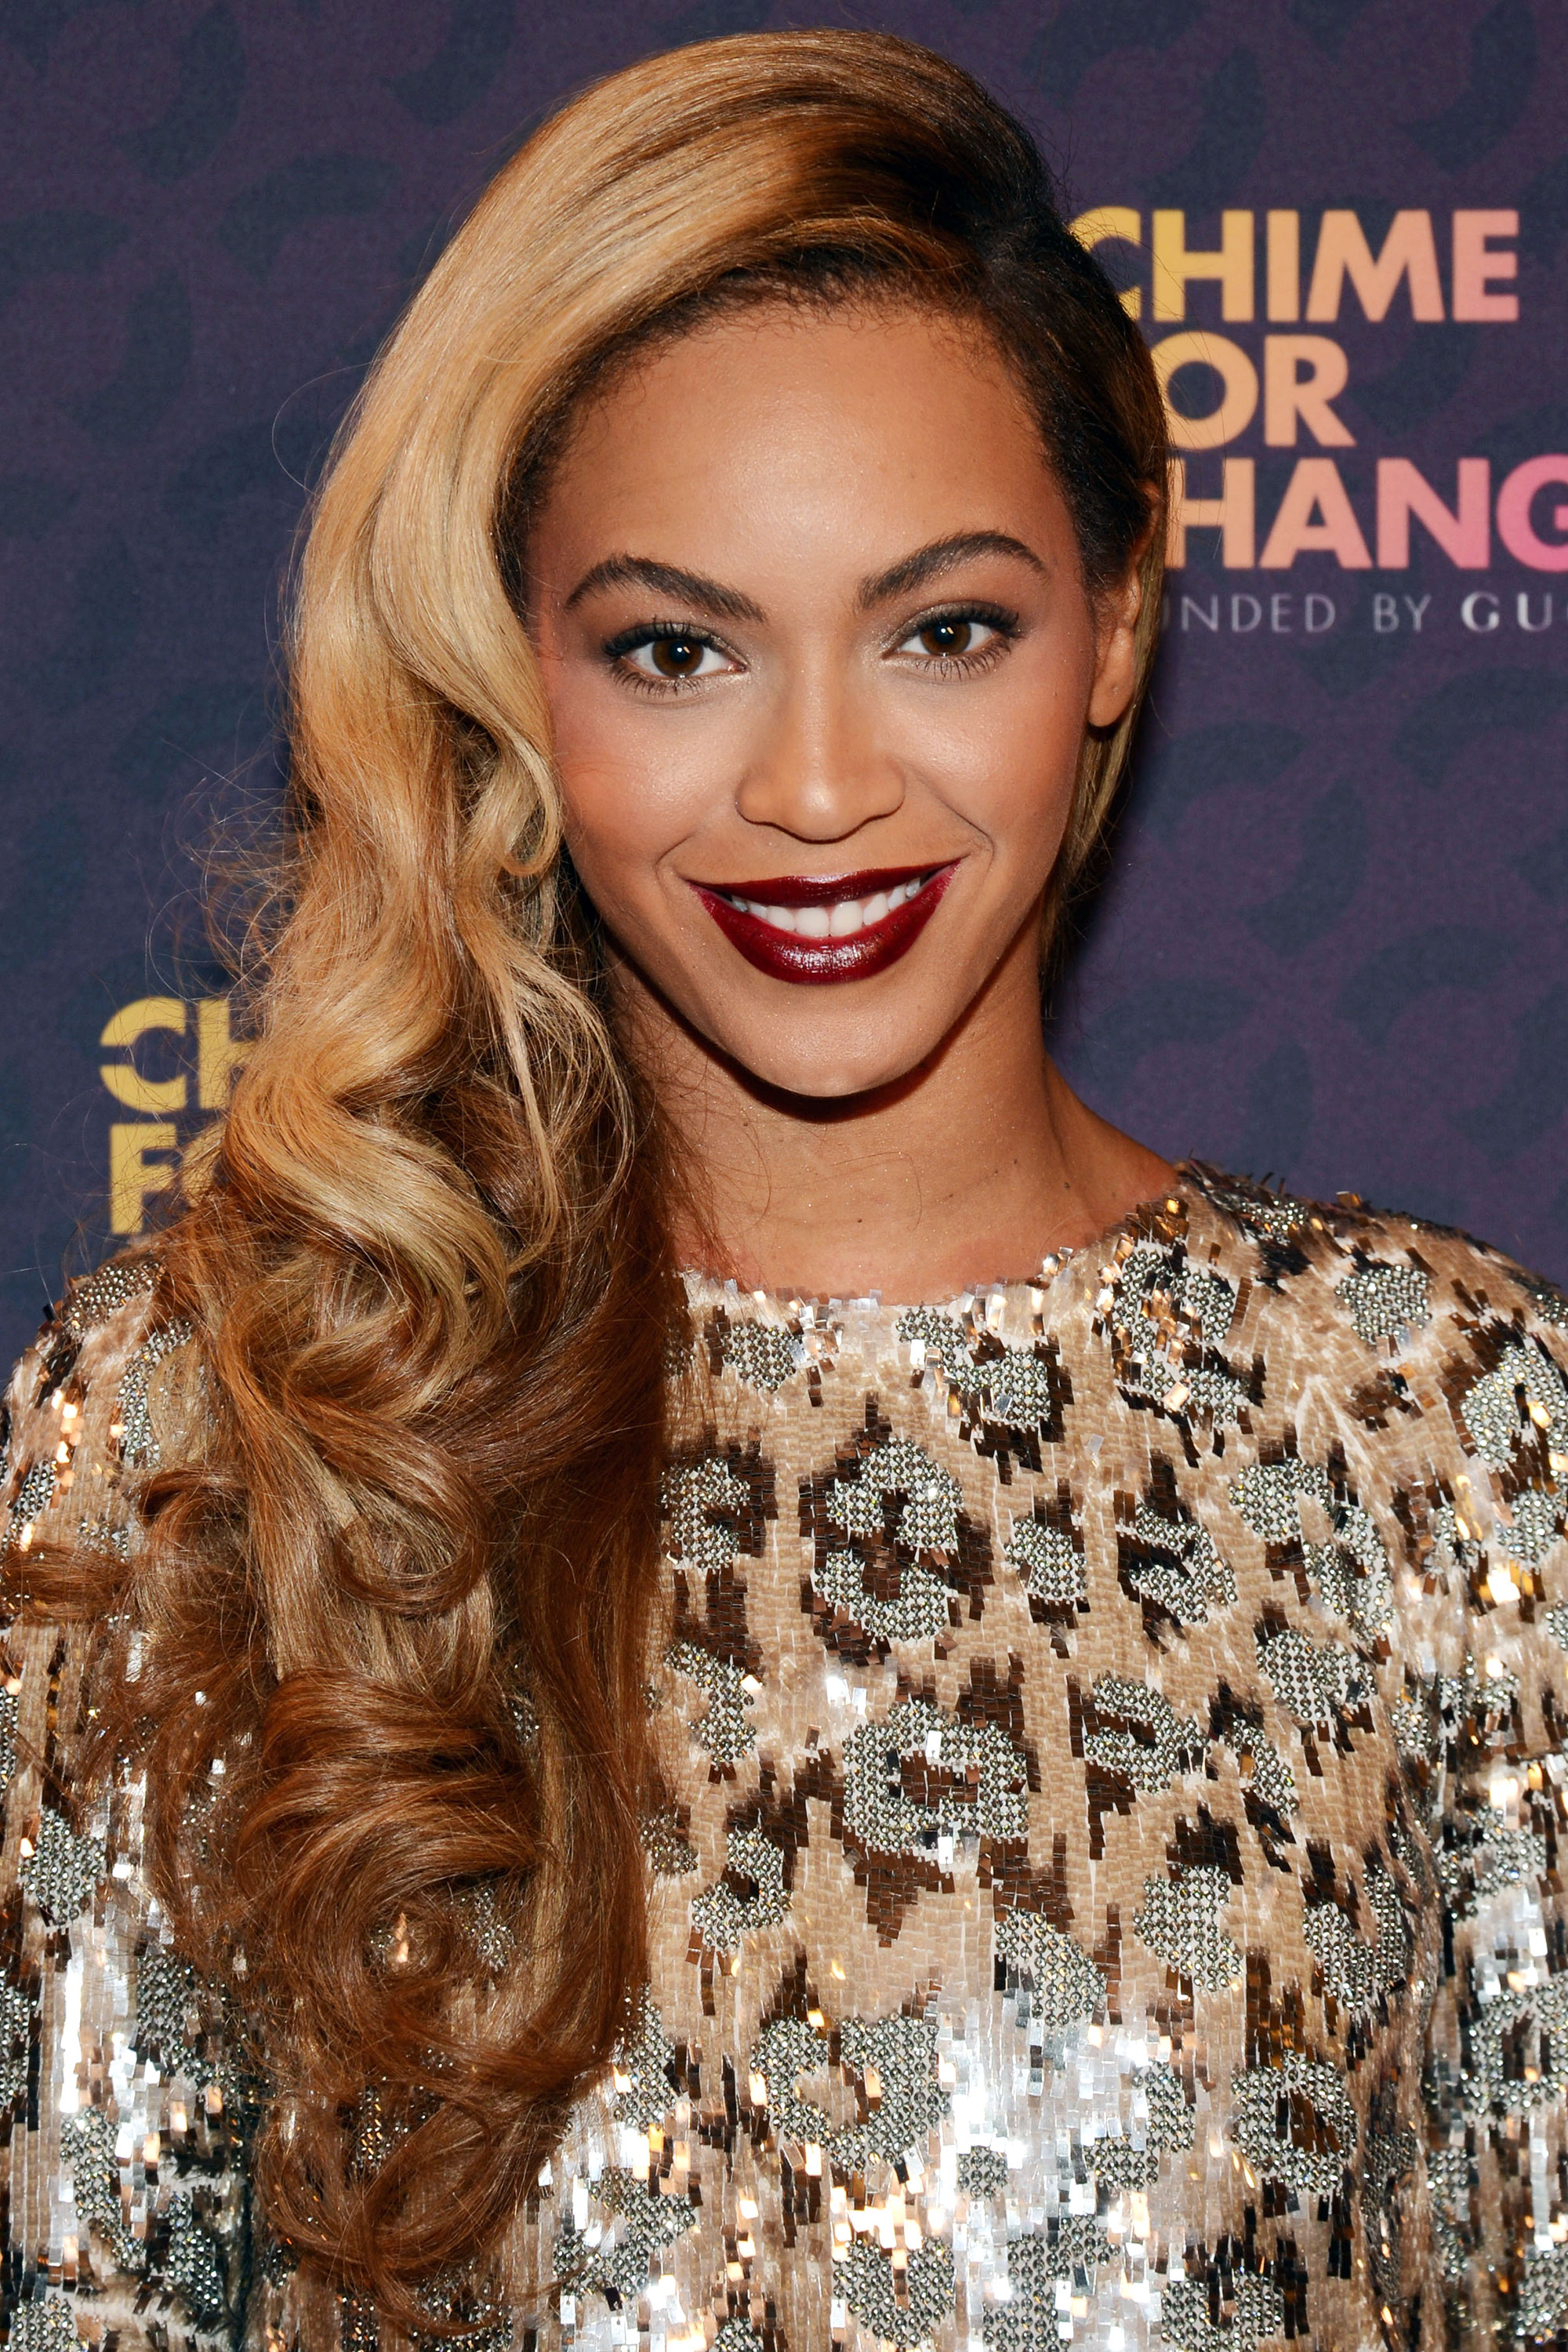 Wondrous 40 Beyonce Hairstyles Beyonce39S Real Hair Long Hair And Short Short Hairstyles For Black Women Fulllsitofus